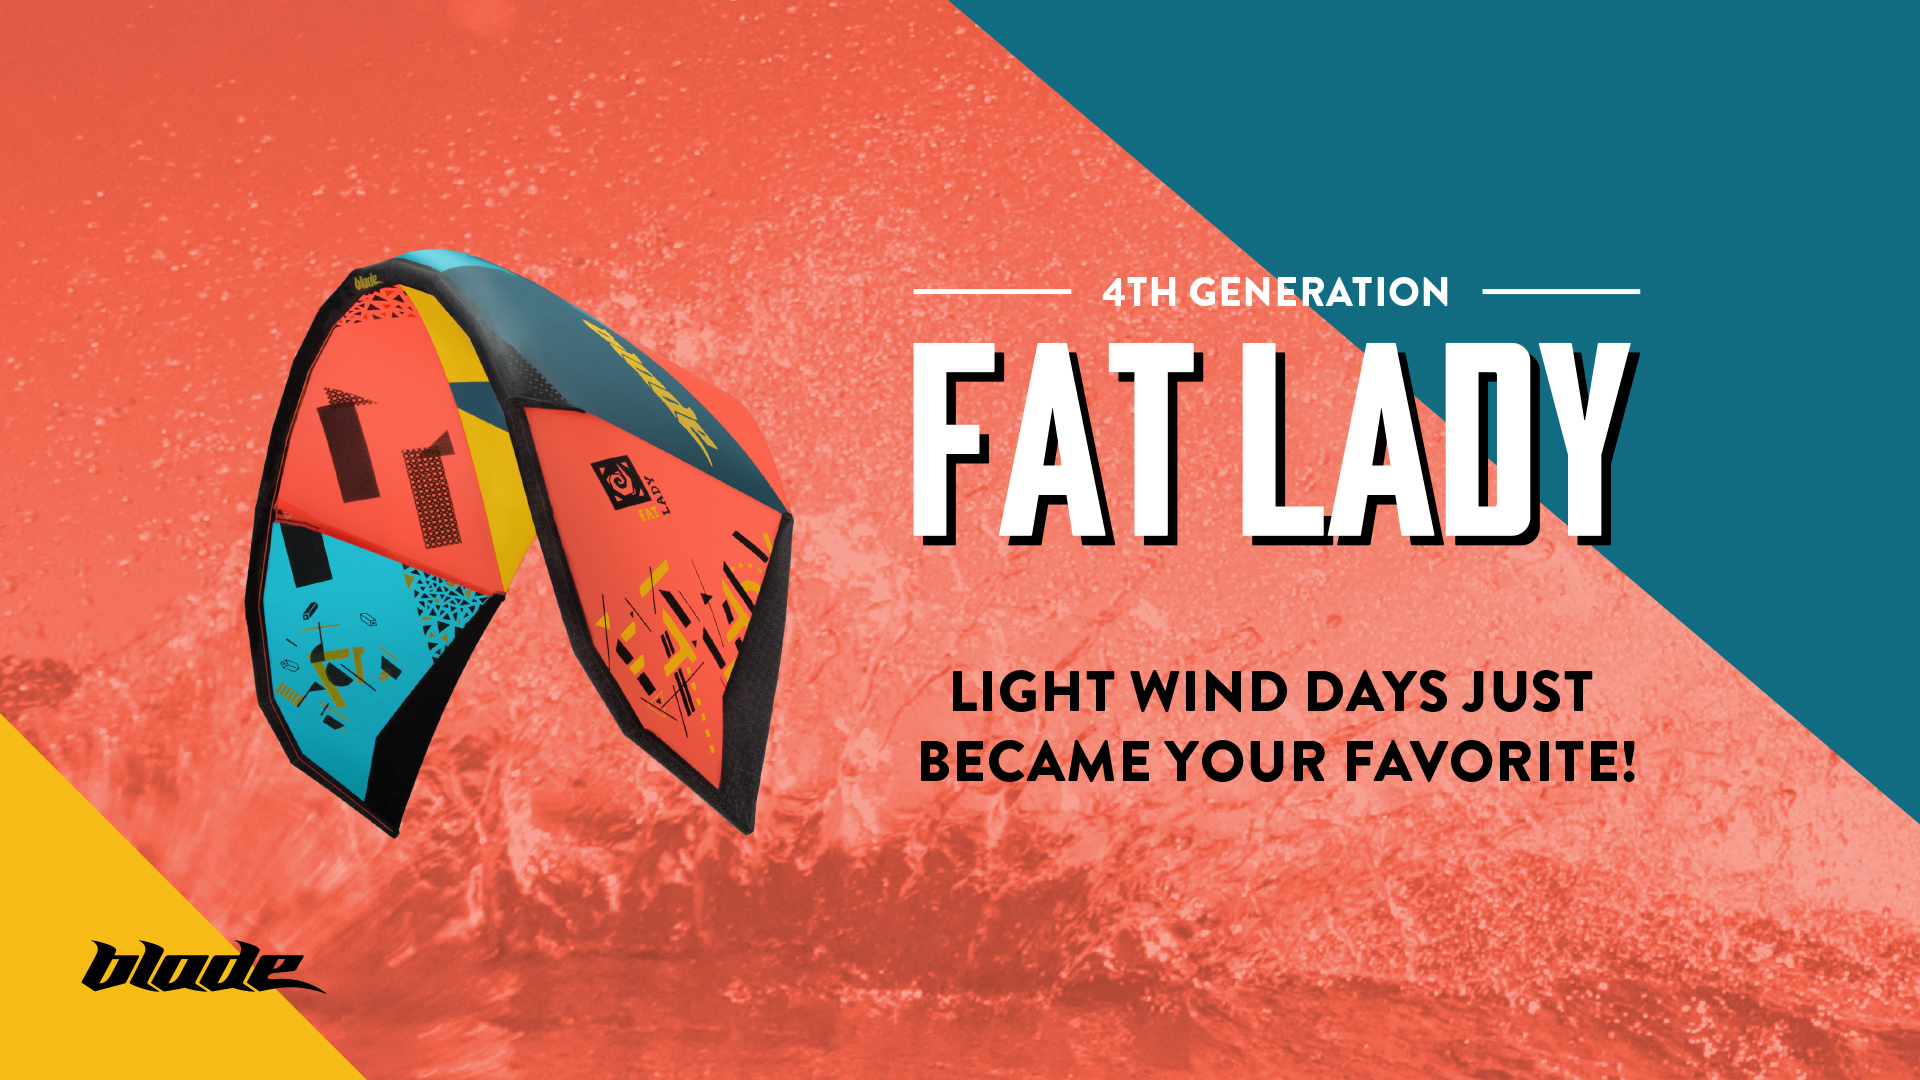 Blade-Homepage-Banner-FatLady-A-01i